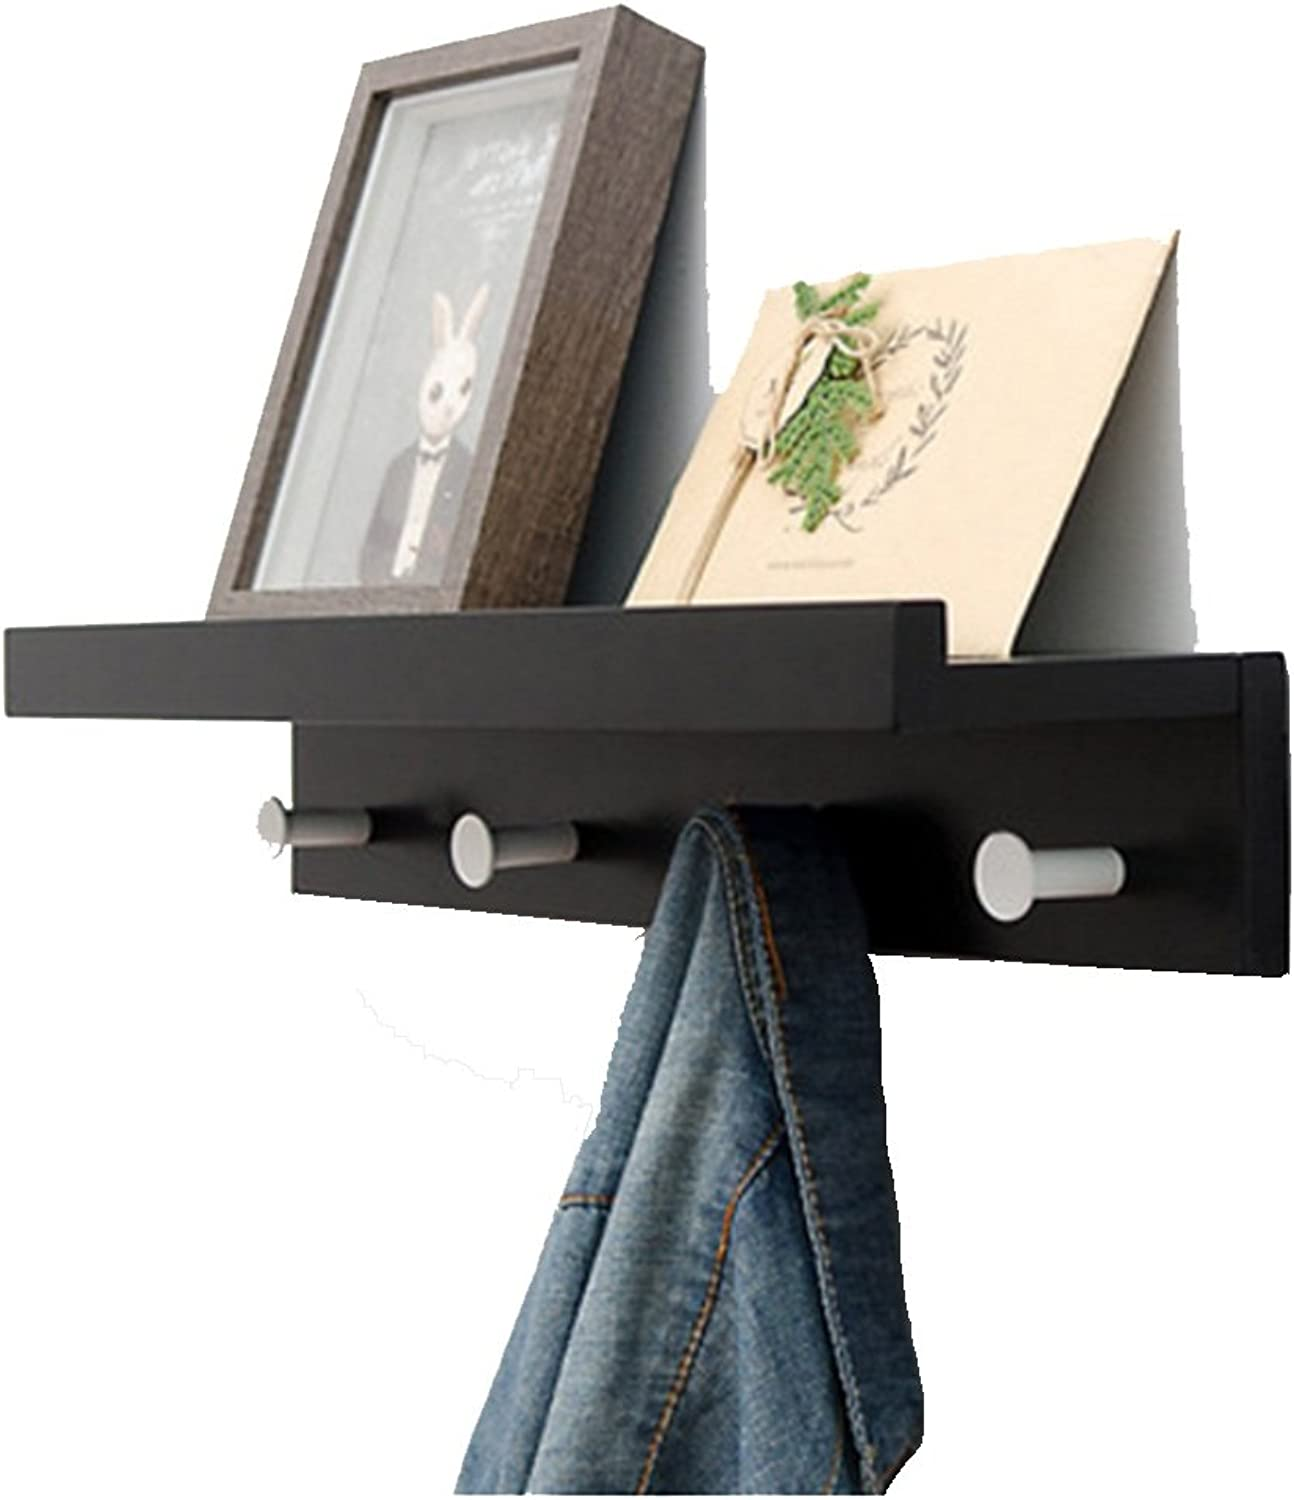 Nanianhuakai Black Hook Wall Mounted Coat Hook Coat Rack Creative Wall Hanger Entrance Shelf Clothes Hanging Wall Coat Hook Multi-Functional Clothing Rack (Size   4 Hooks)